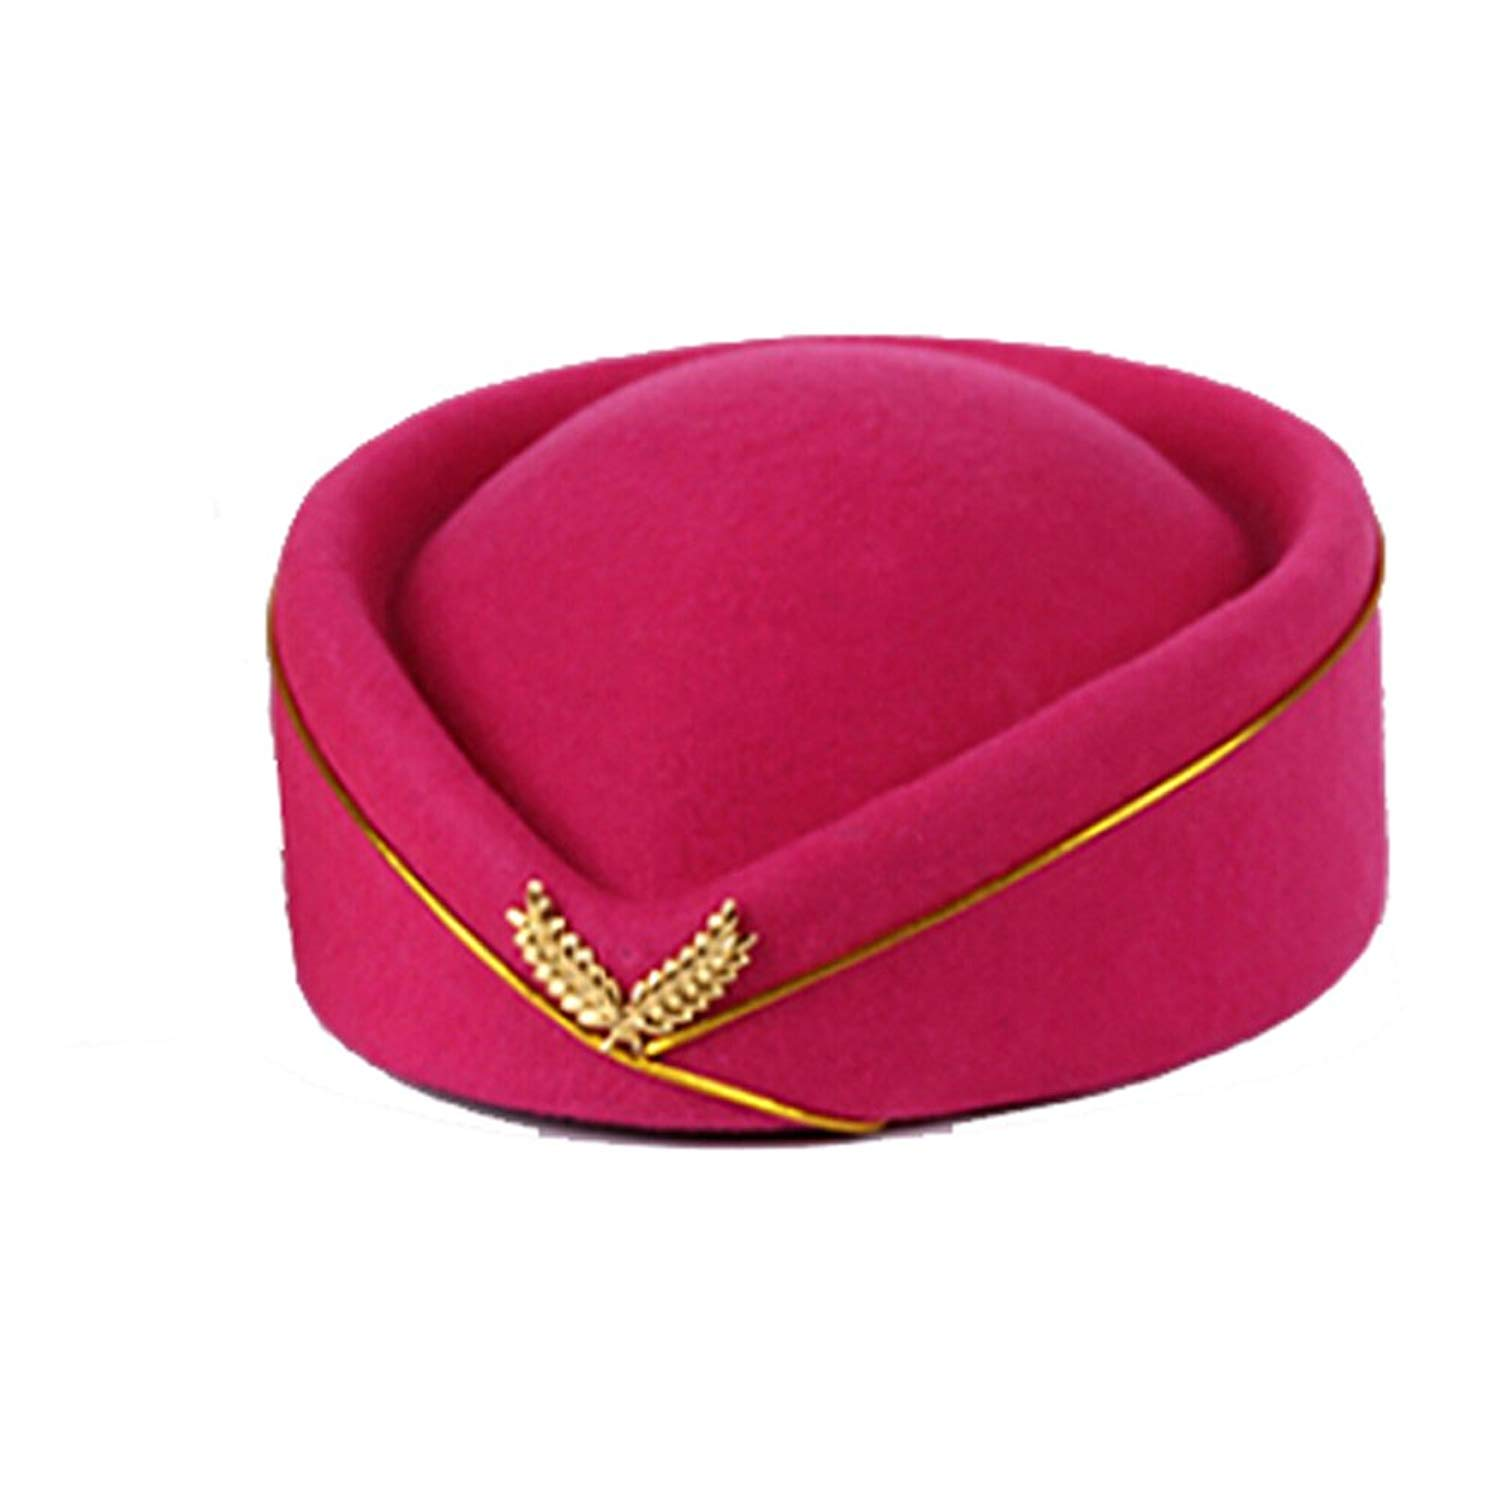 9b8e2159836 Get Quotations · Handmade FADVES Professionals Customized Careeer Stewardess  Hat Etiquette Cap Women